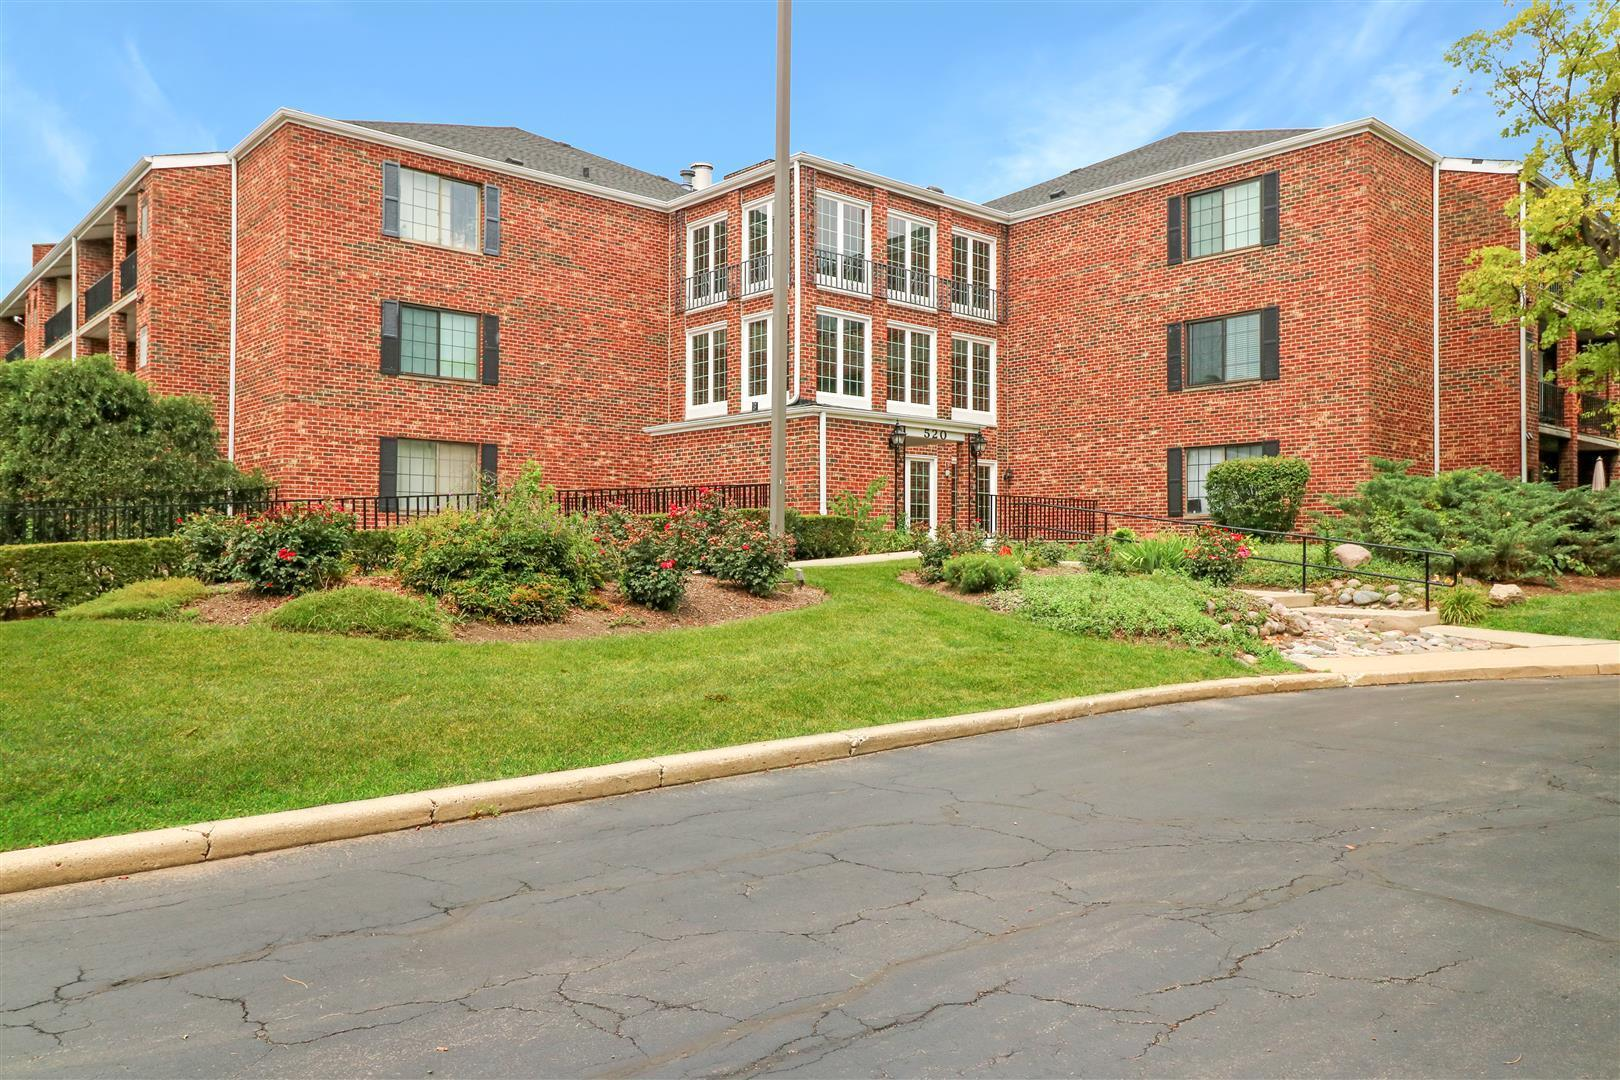 520 Biesterfield Road #202, Elk Grove Village, IL 60007 - #: 10784372